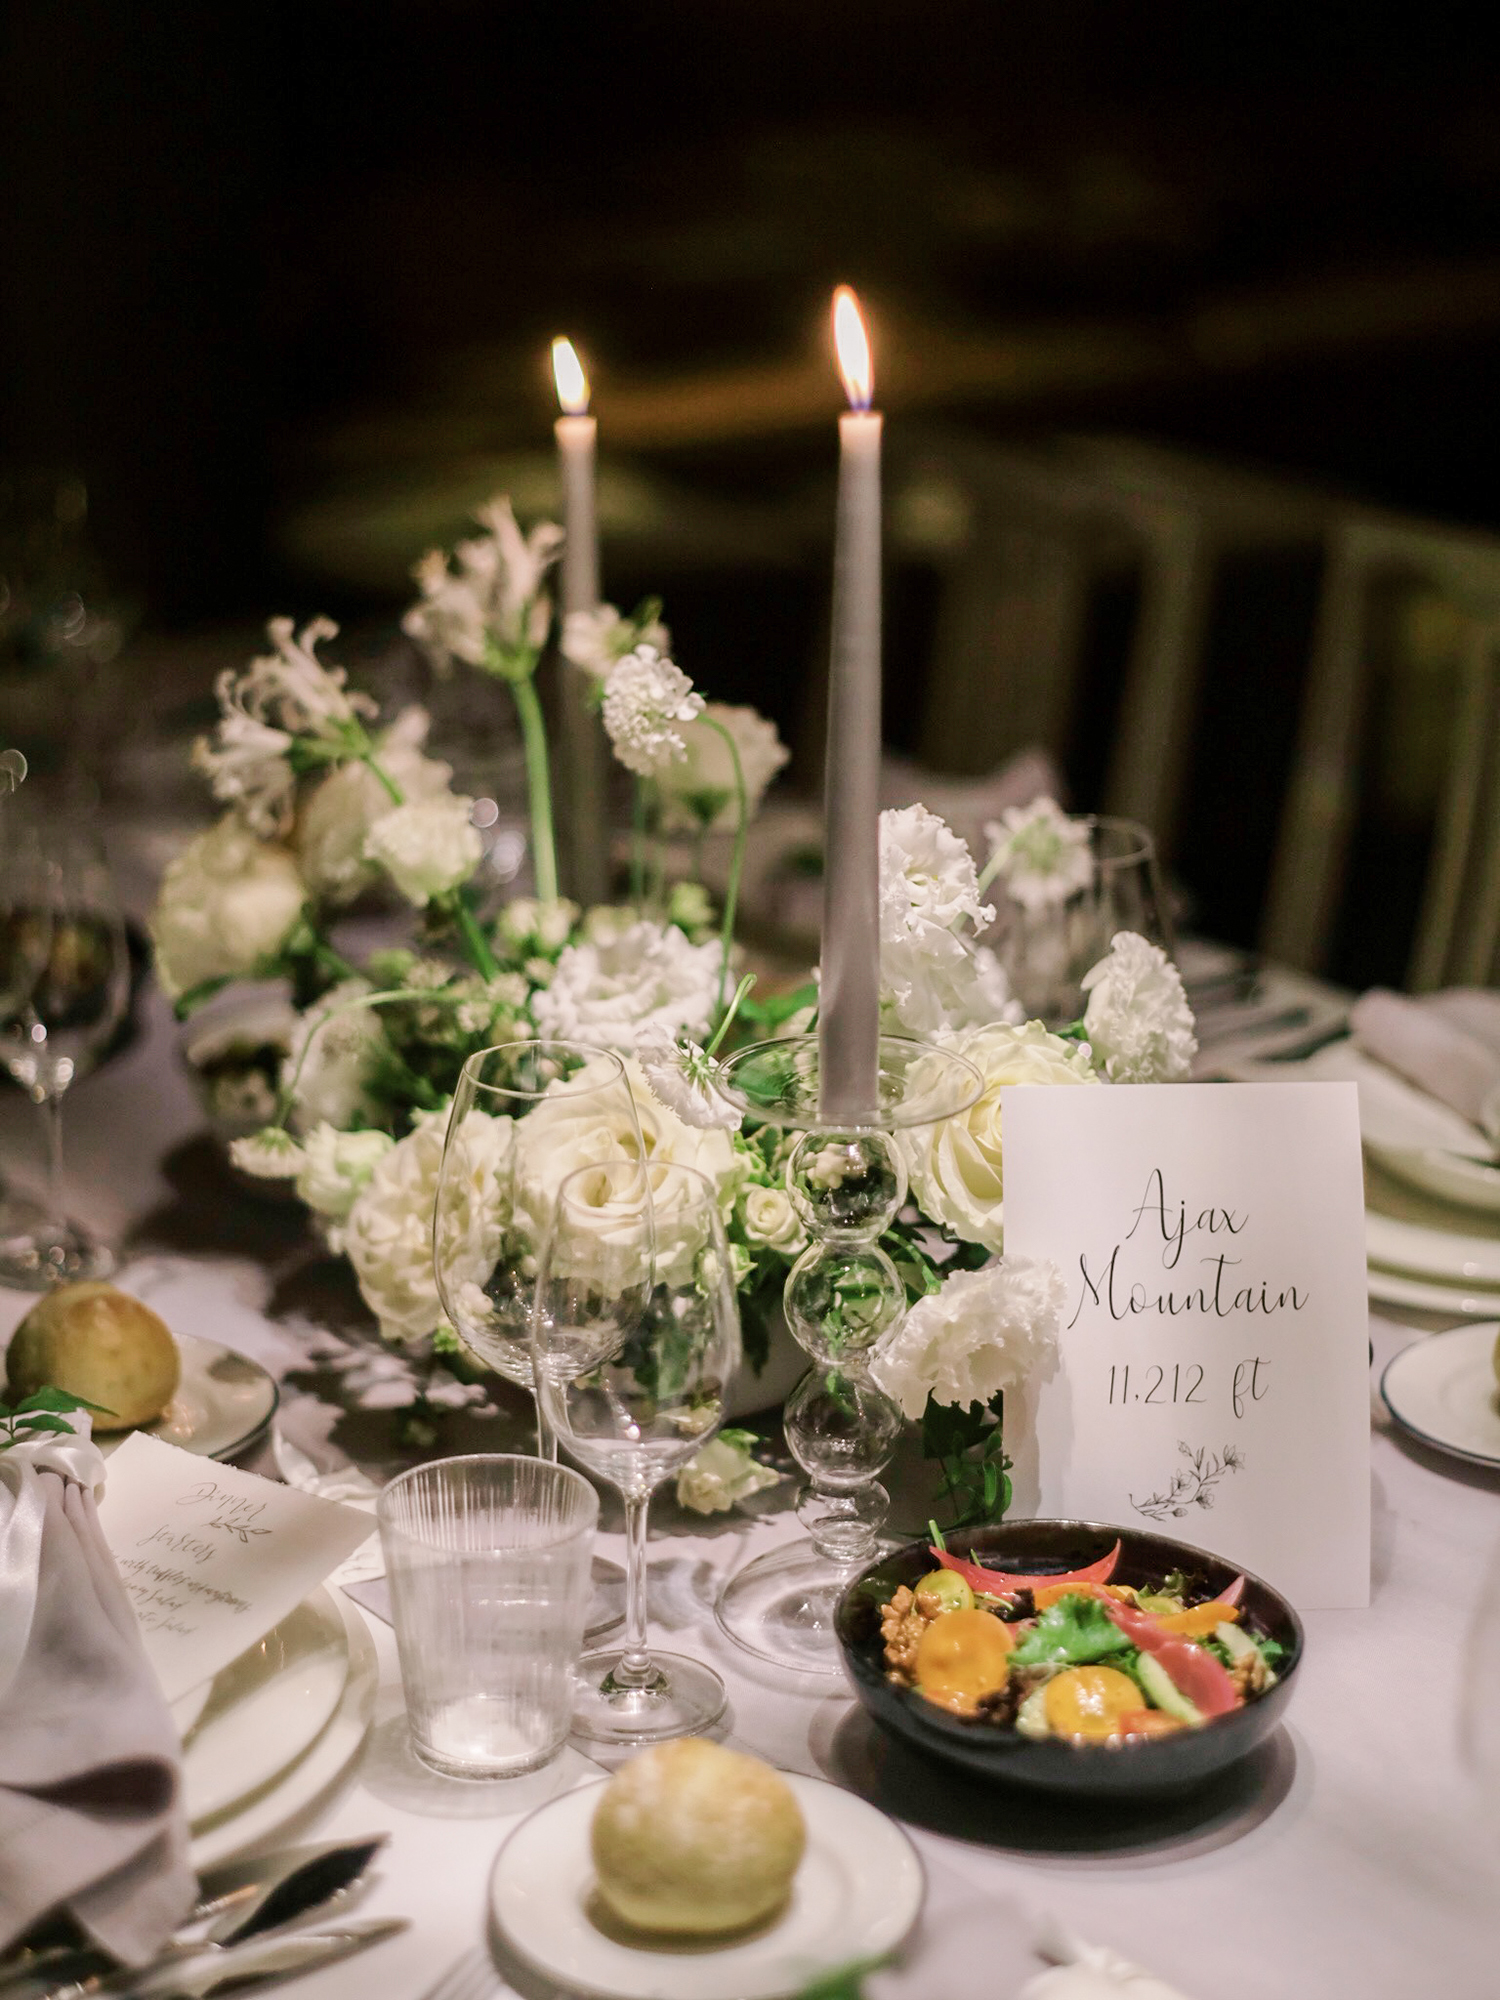 Table decor and flowers at night